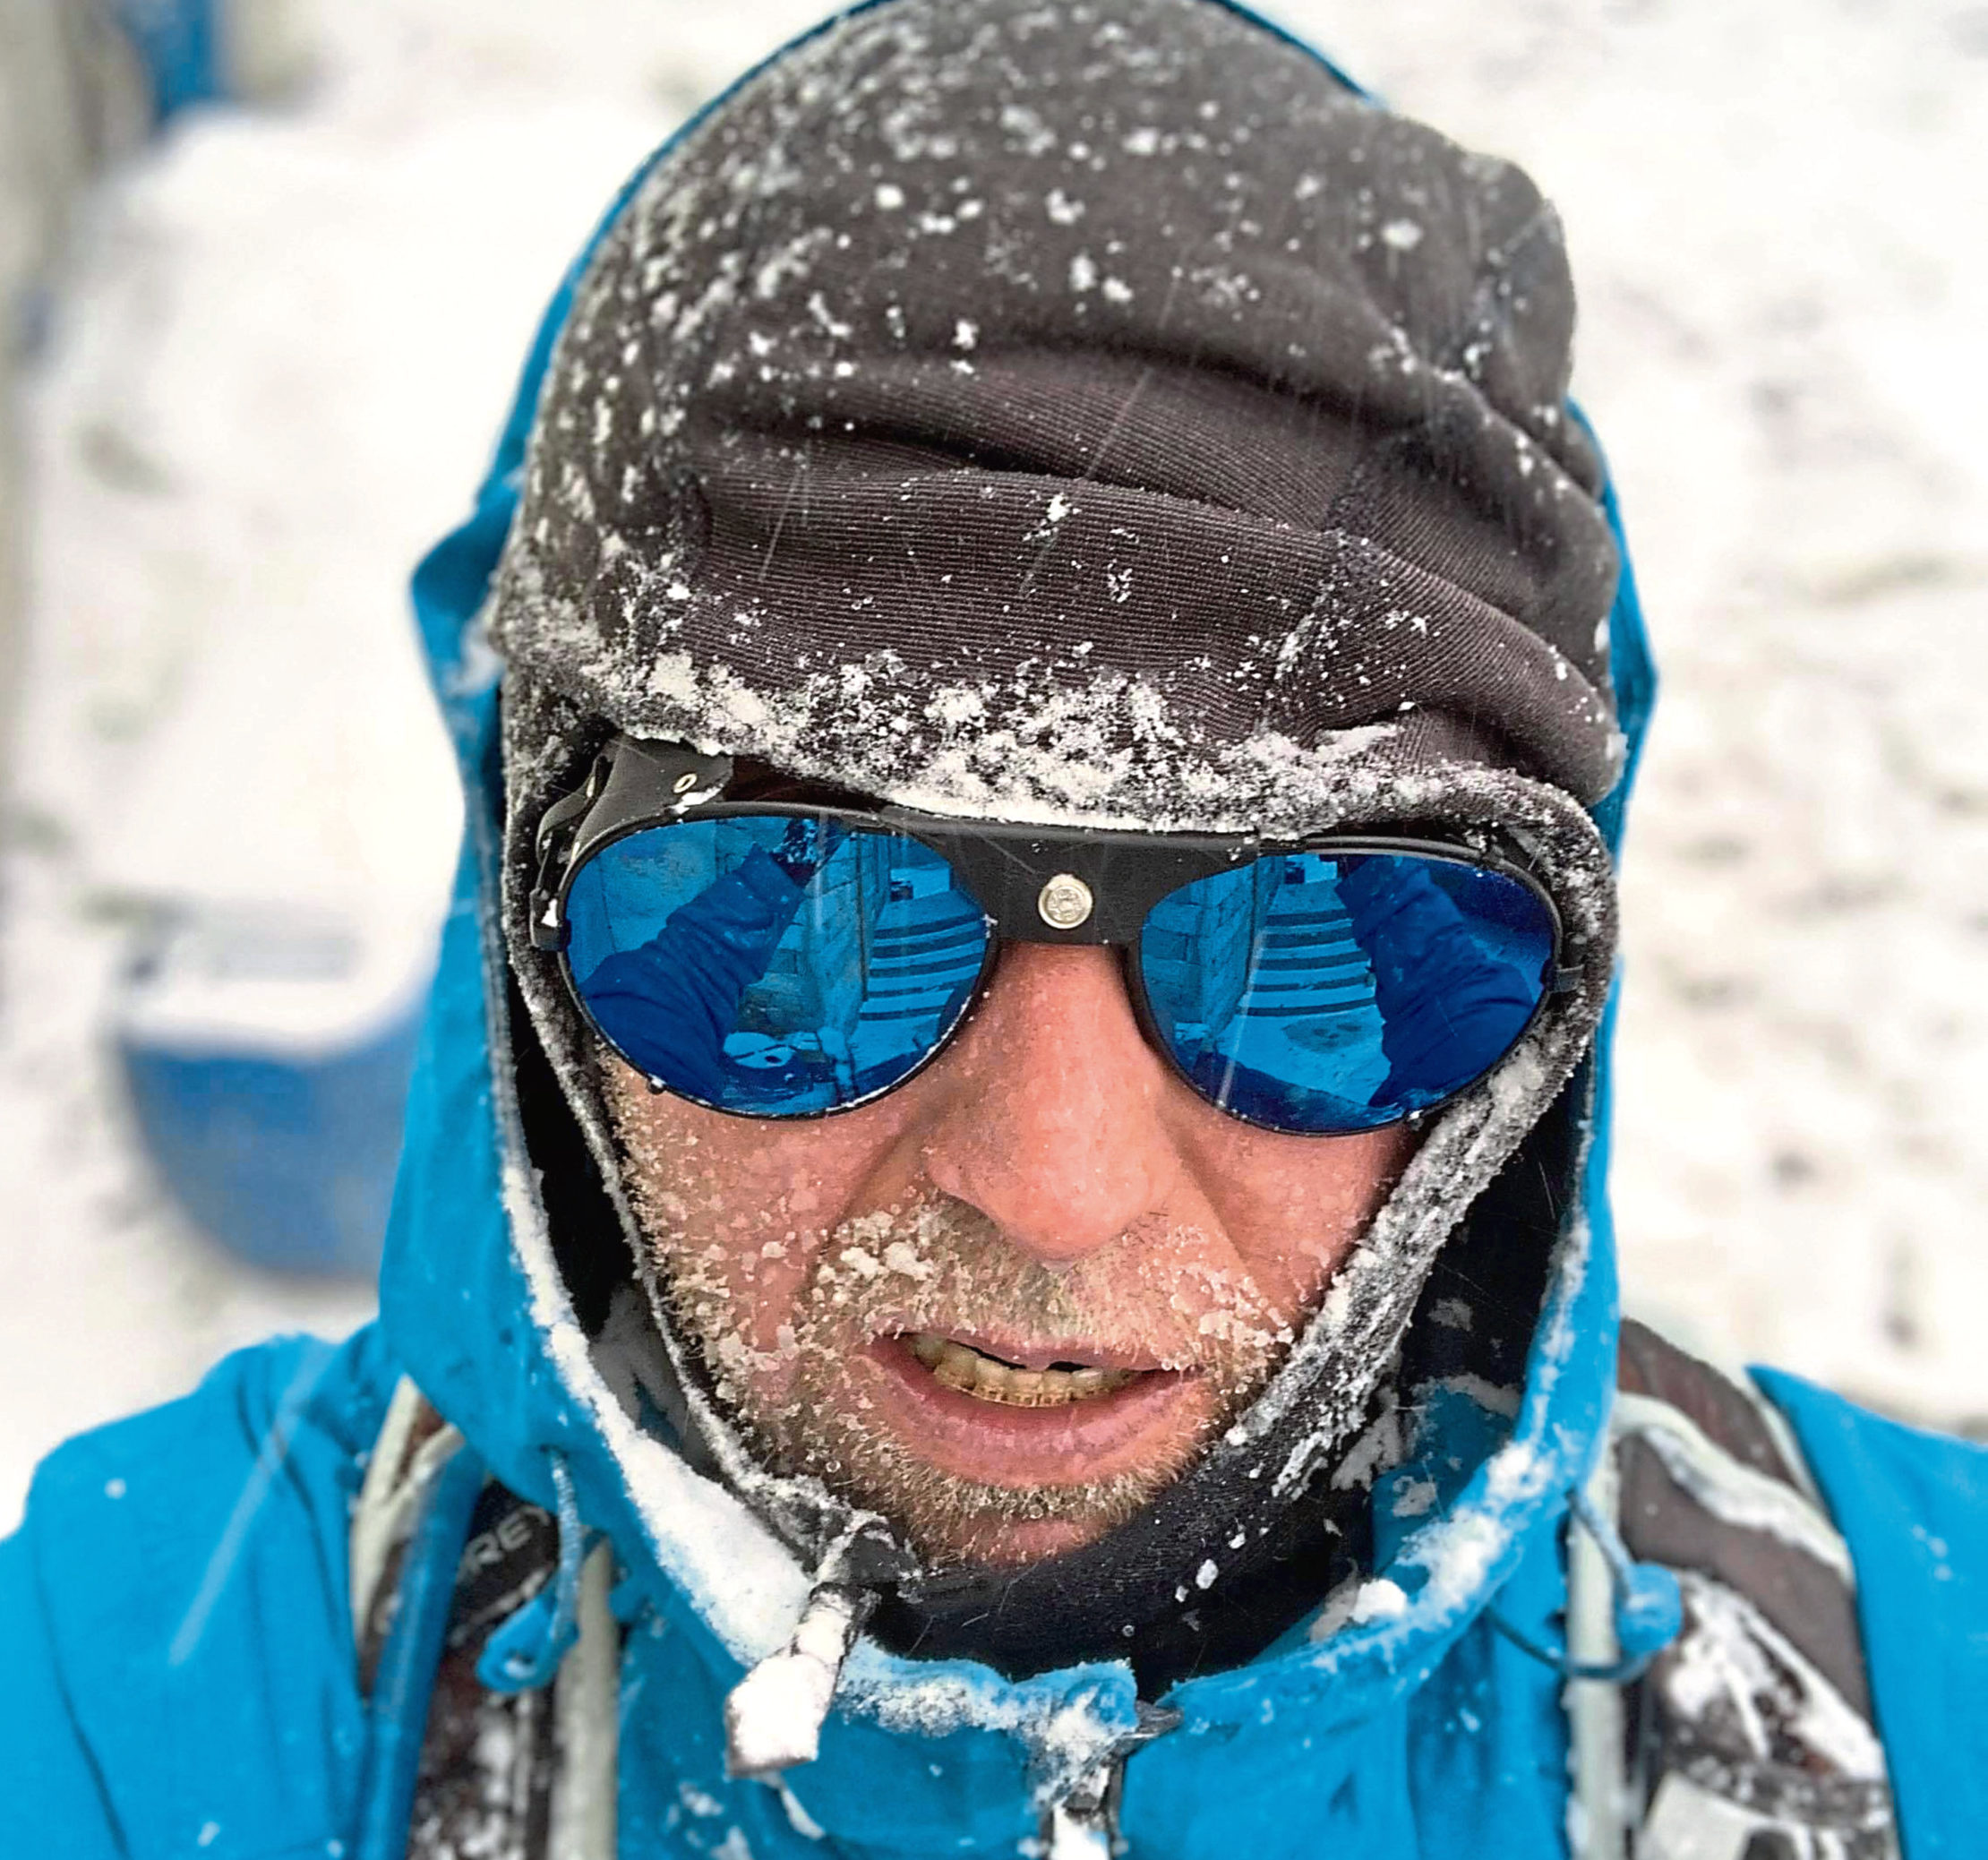 Robert Strachan climbed to Mount Everest's base camp